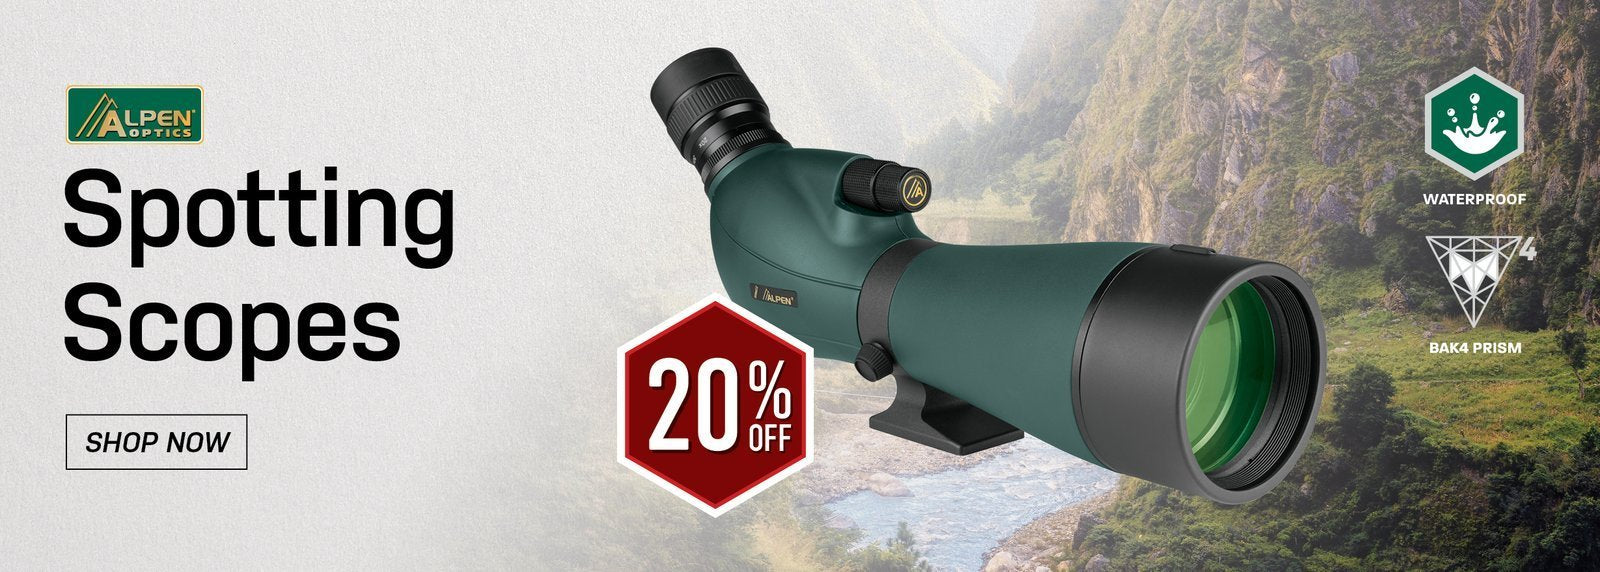 Alpen Spotting Scopes - 20% Off